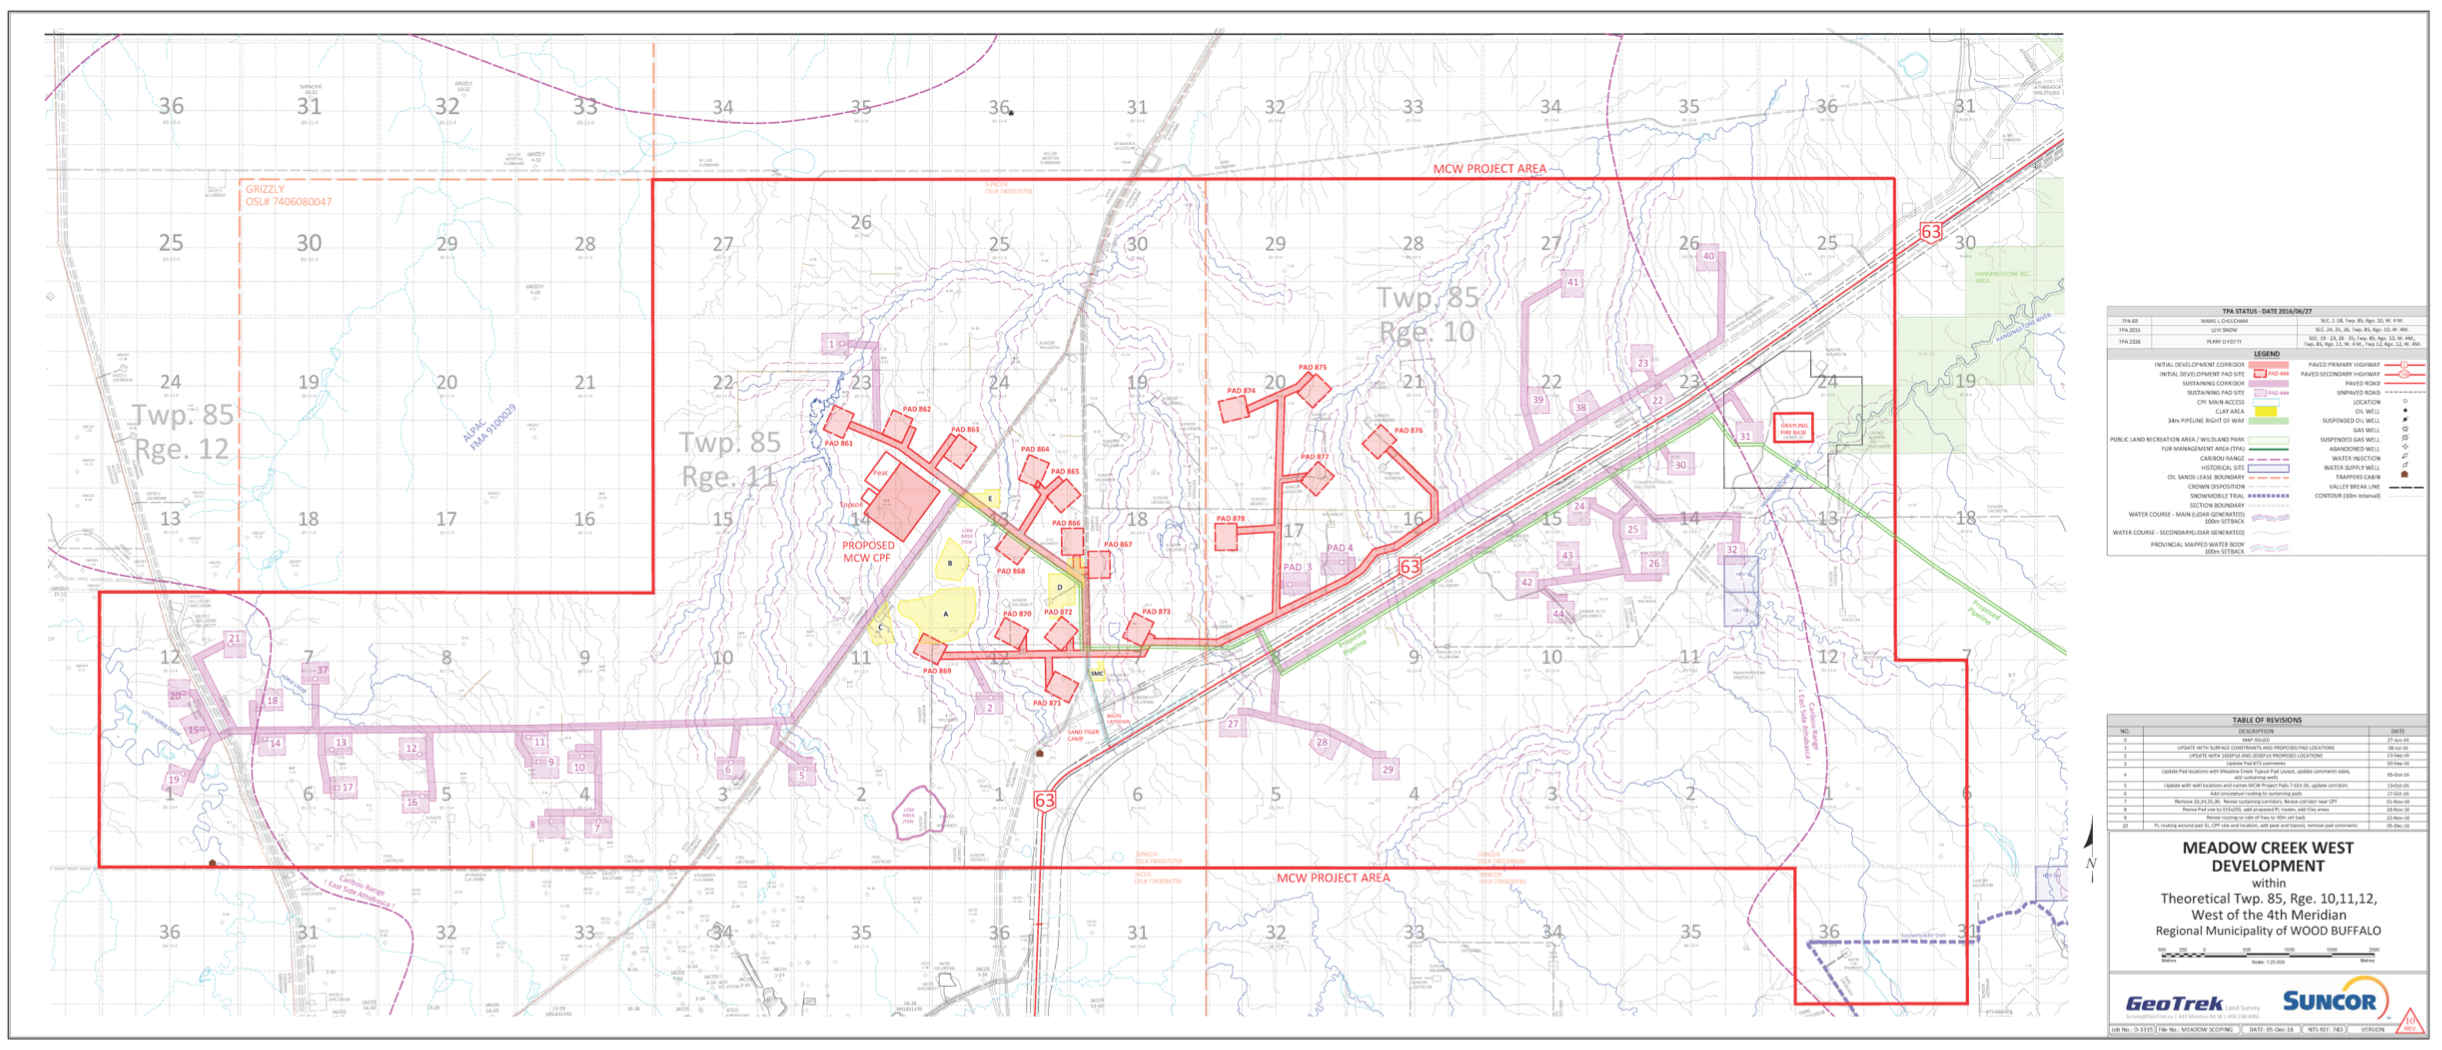 FACILITY SITE MAP COURTESY SUNCOR ENERGY